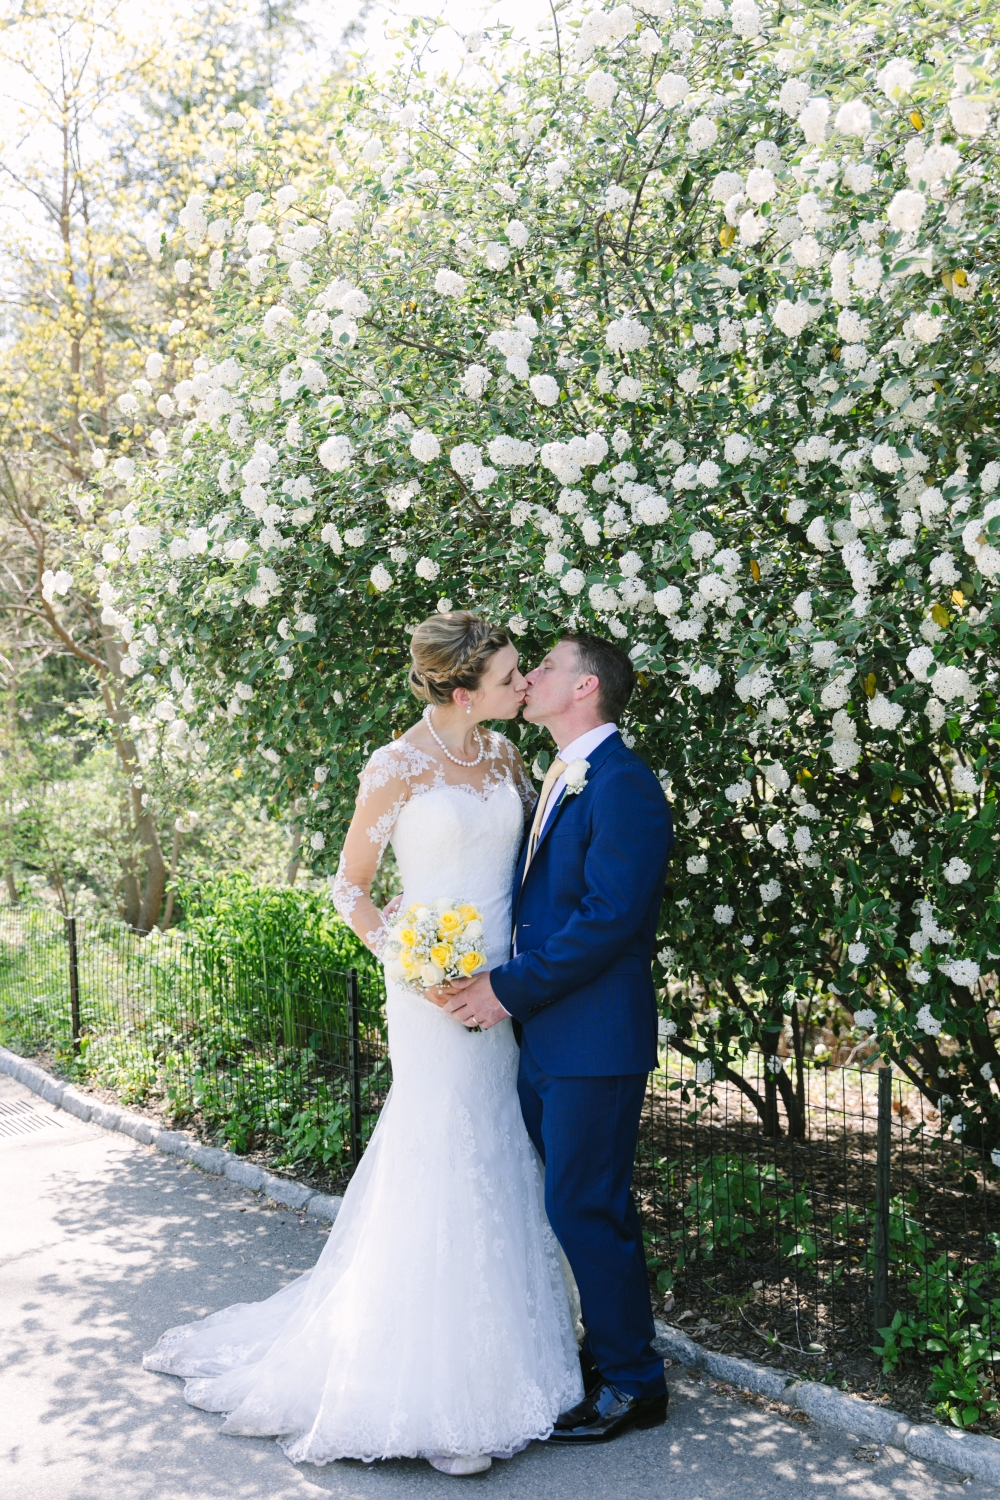 Wagner-cove-central-park-wedding-SS-192